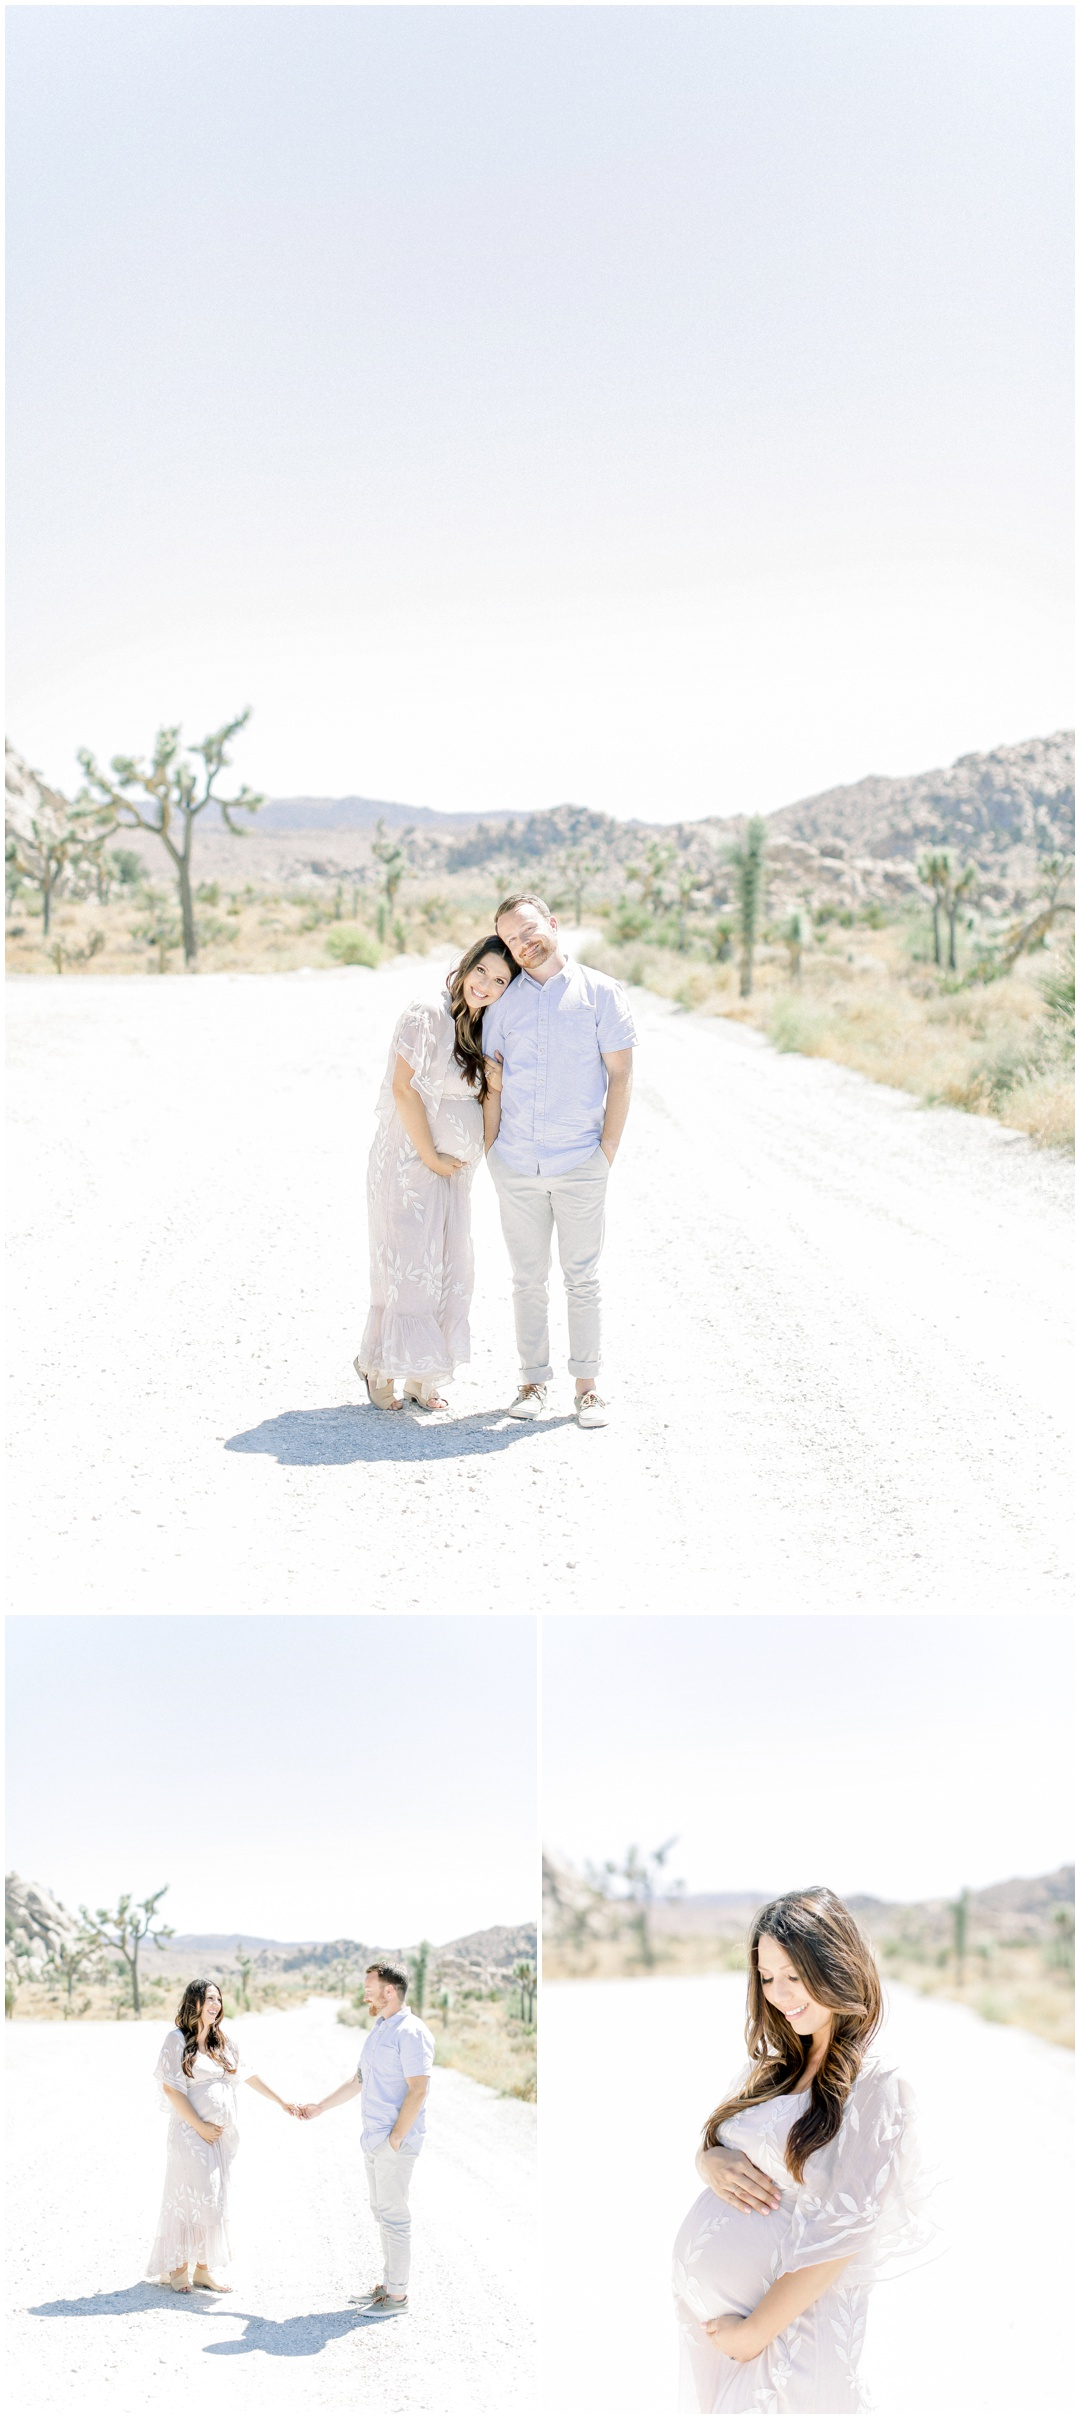 Newport_Beach_Joshua_Tree_Maternity_Photos_Session_Leliani_Hailey_Shane_Hailey_Maternity_Session__4264.jpg